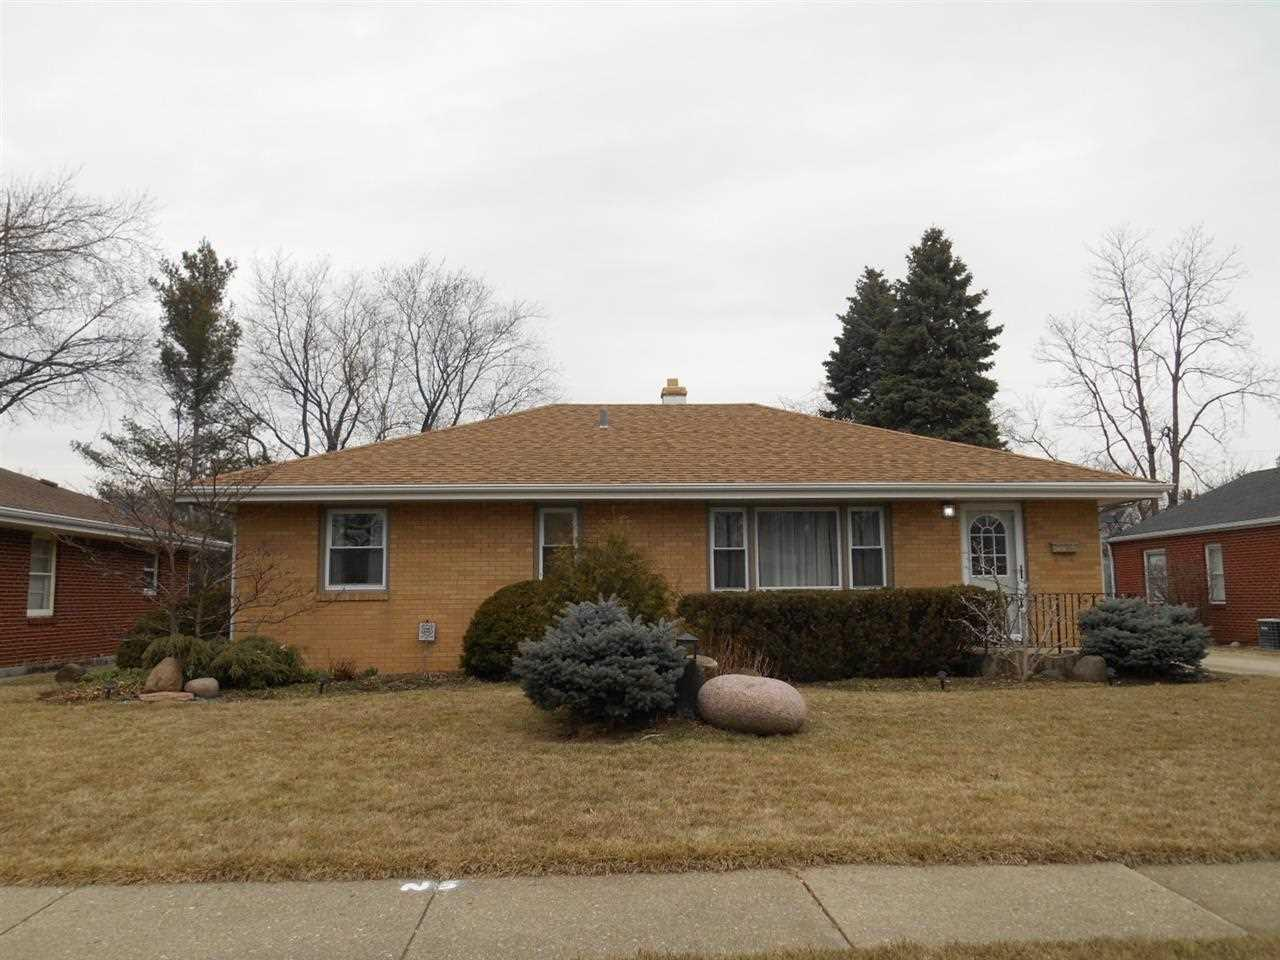 2203 Midway Dr, Rockford, IL 61103 - Estimate and Home Details | Trulia